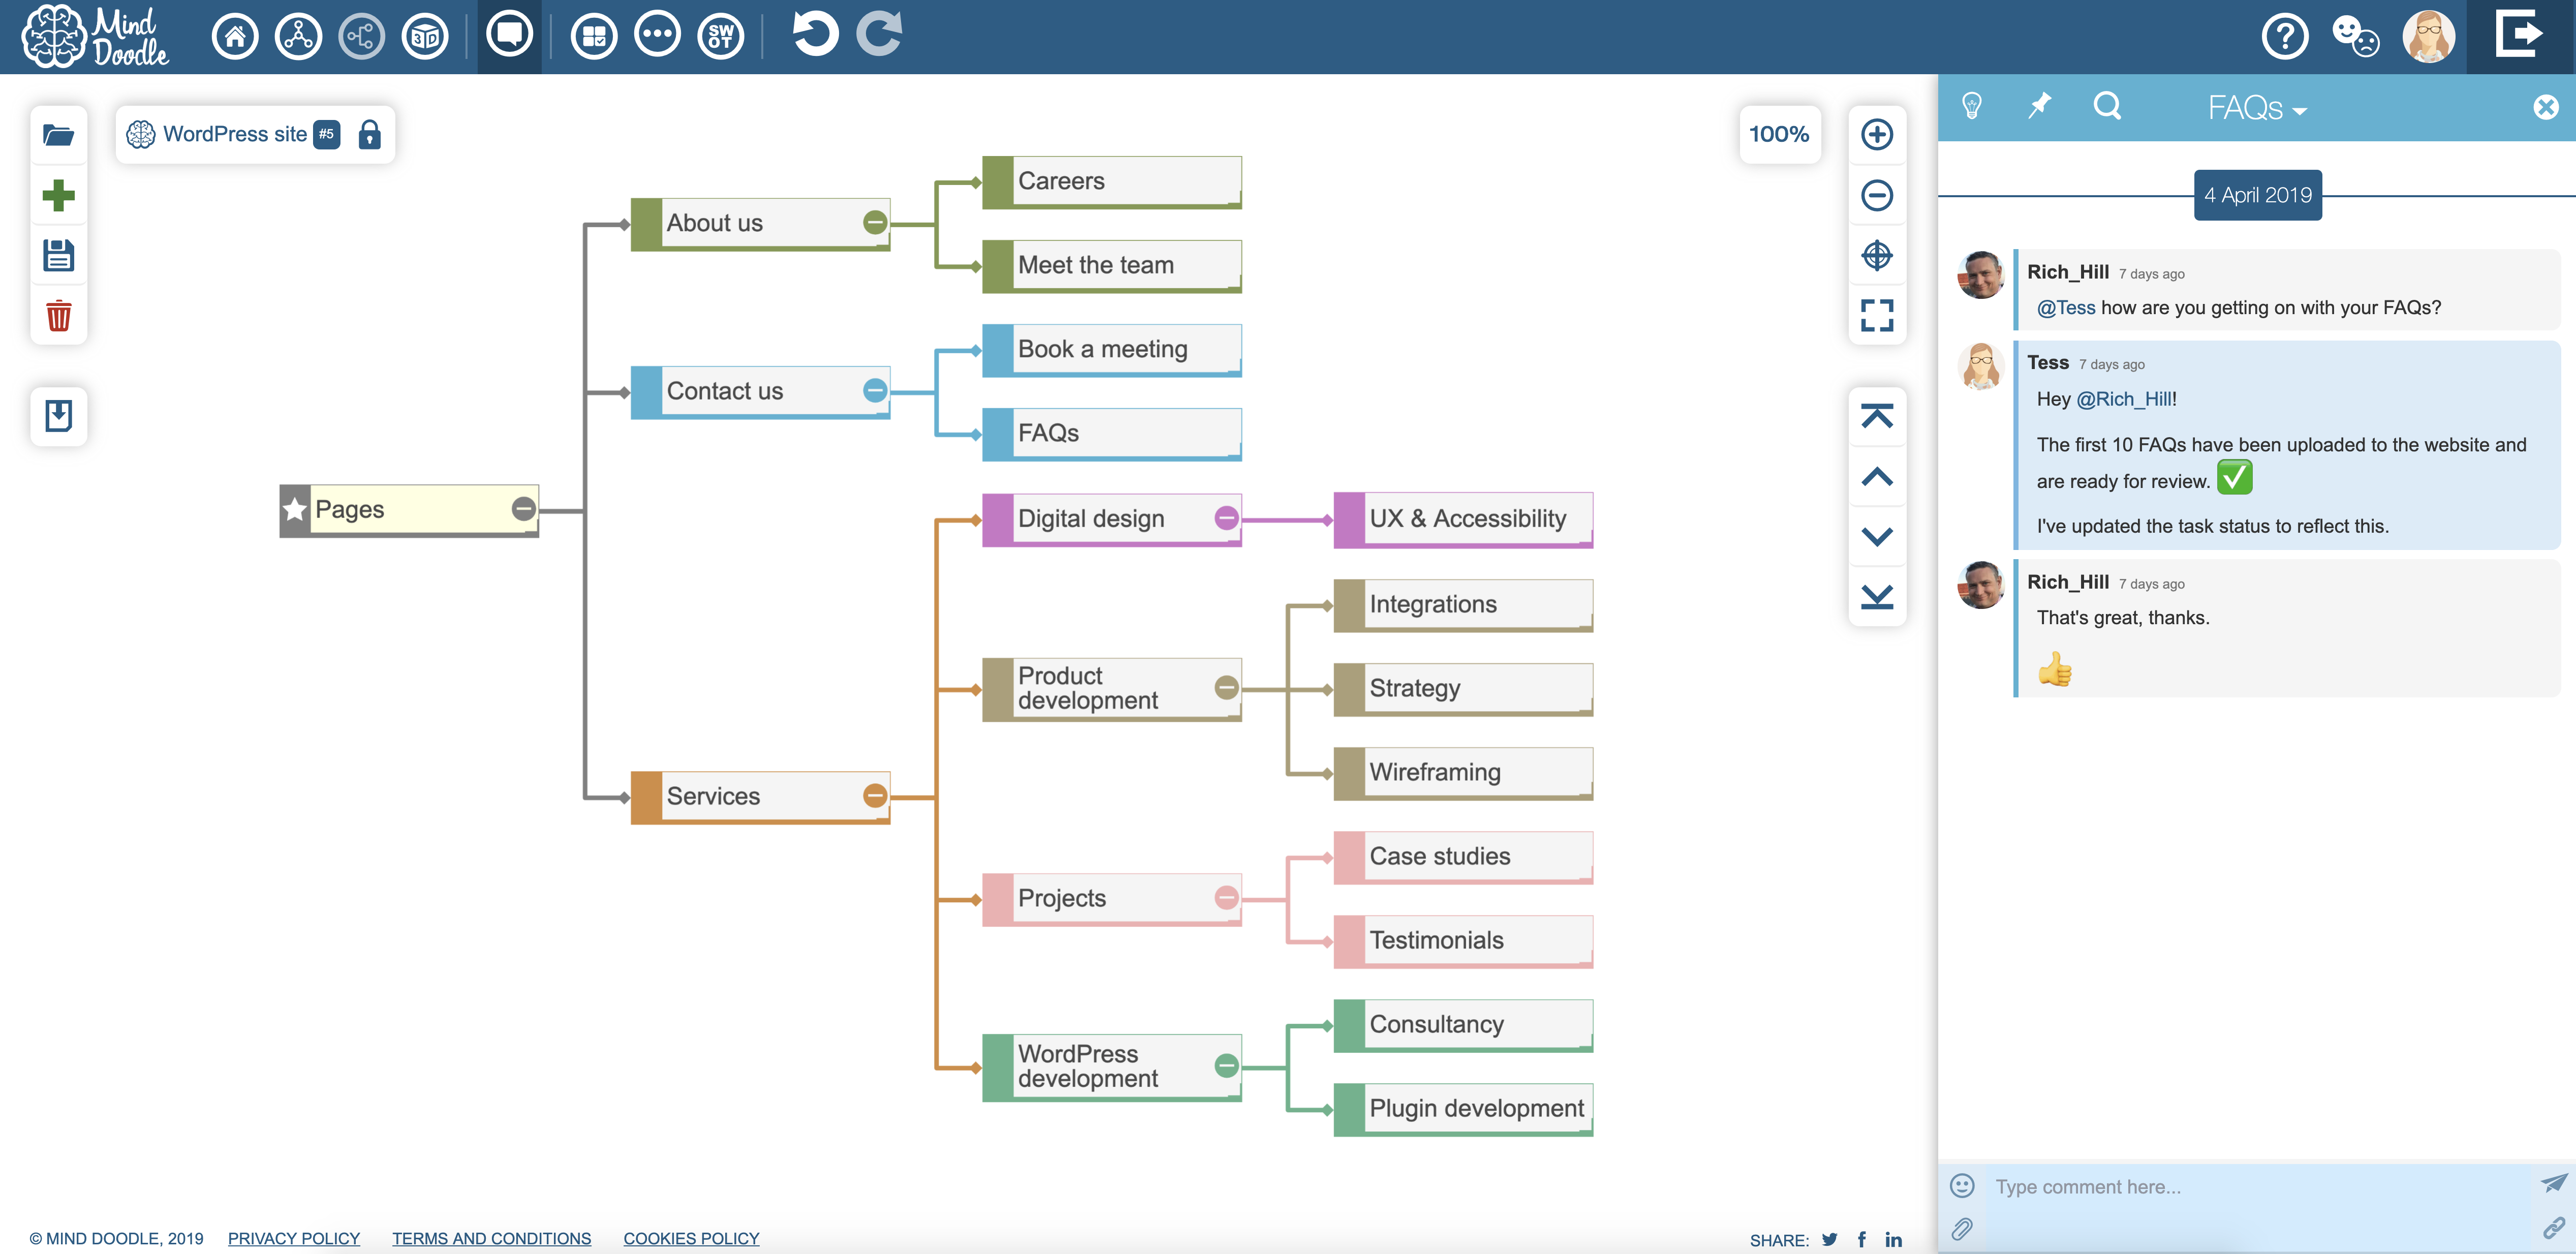 This screenshot shows the Mind Doodle website view with integrated team chat collaboration.